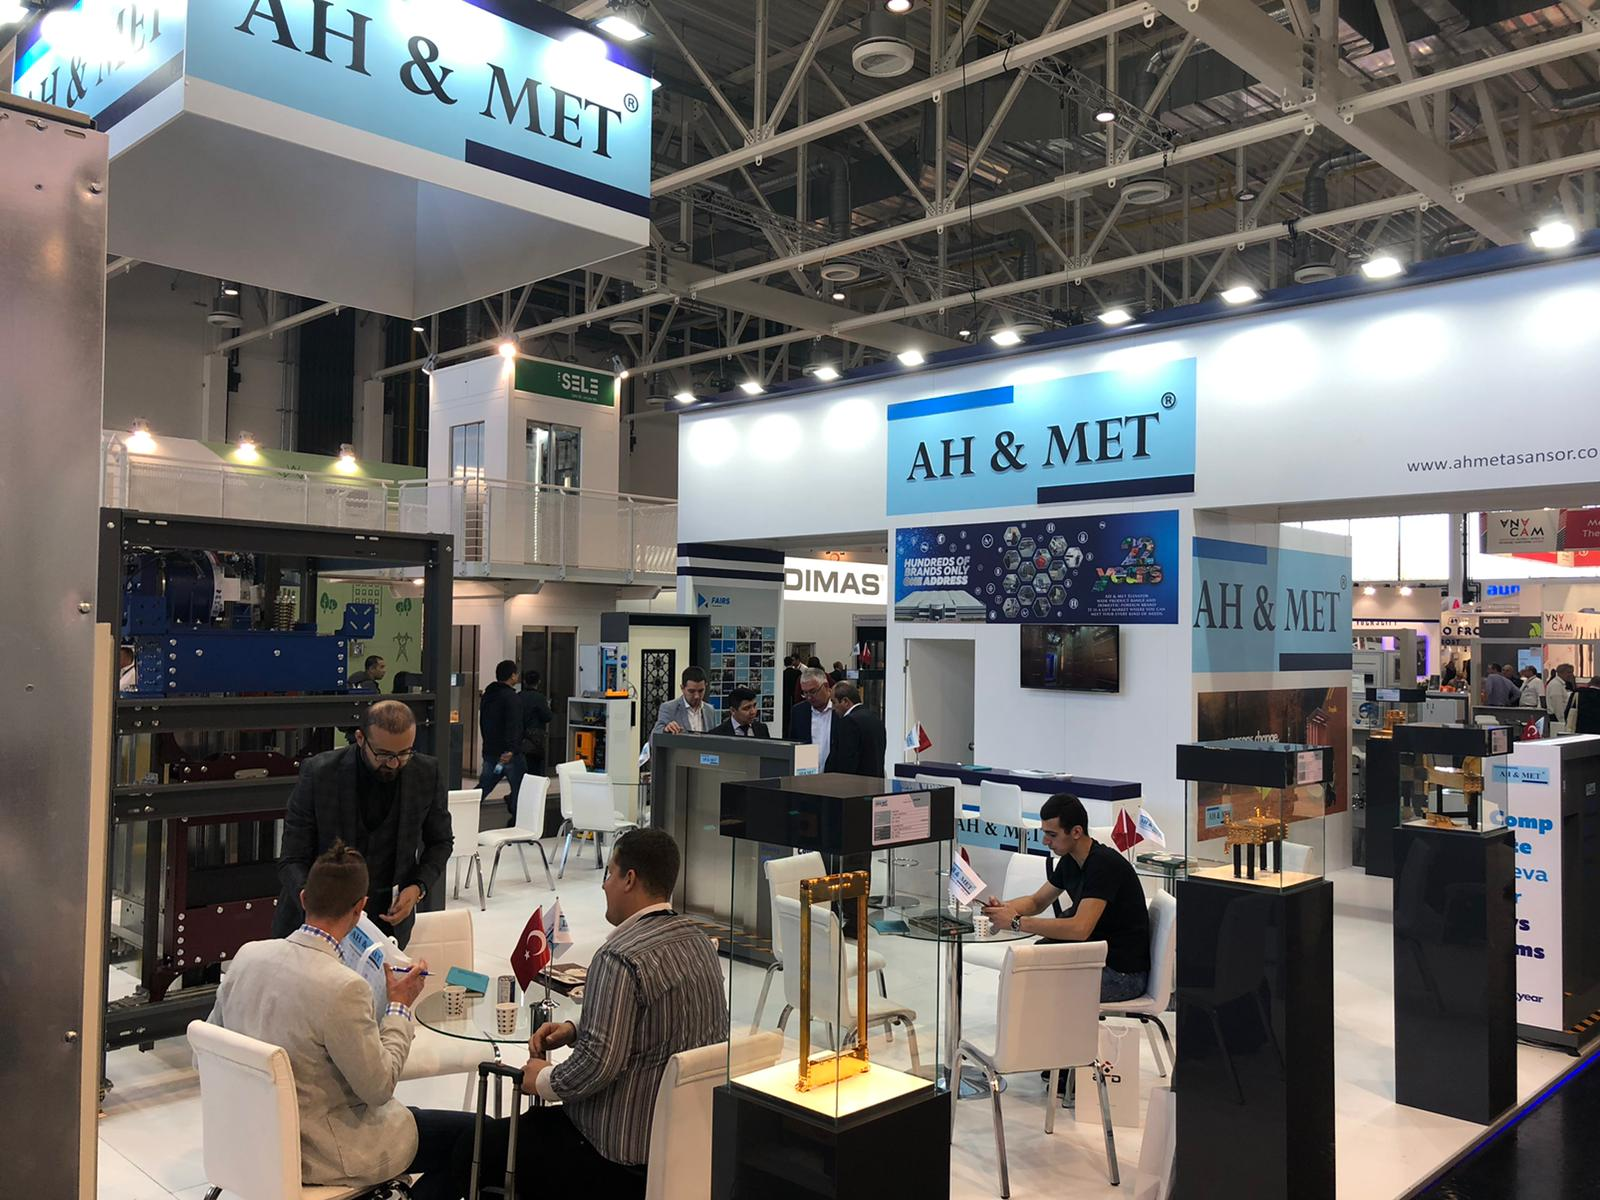 <a href='application-detail/182'>CLICK HERE - INTERLIFT 2019 AUGSBURG GERMANY AHMET ASANSOR STAND   SHOW MORE<a/>